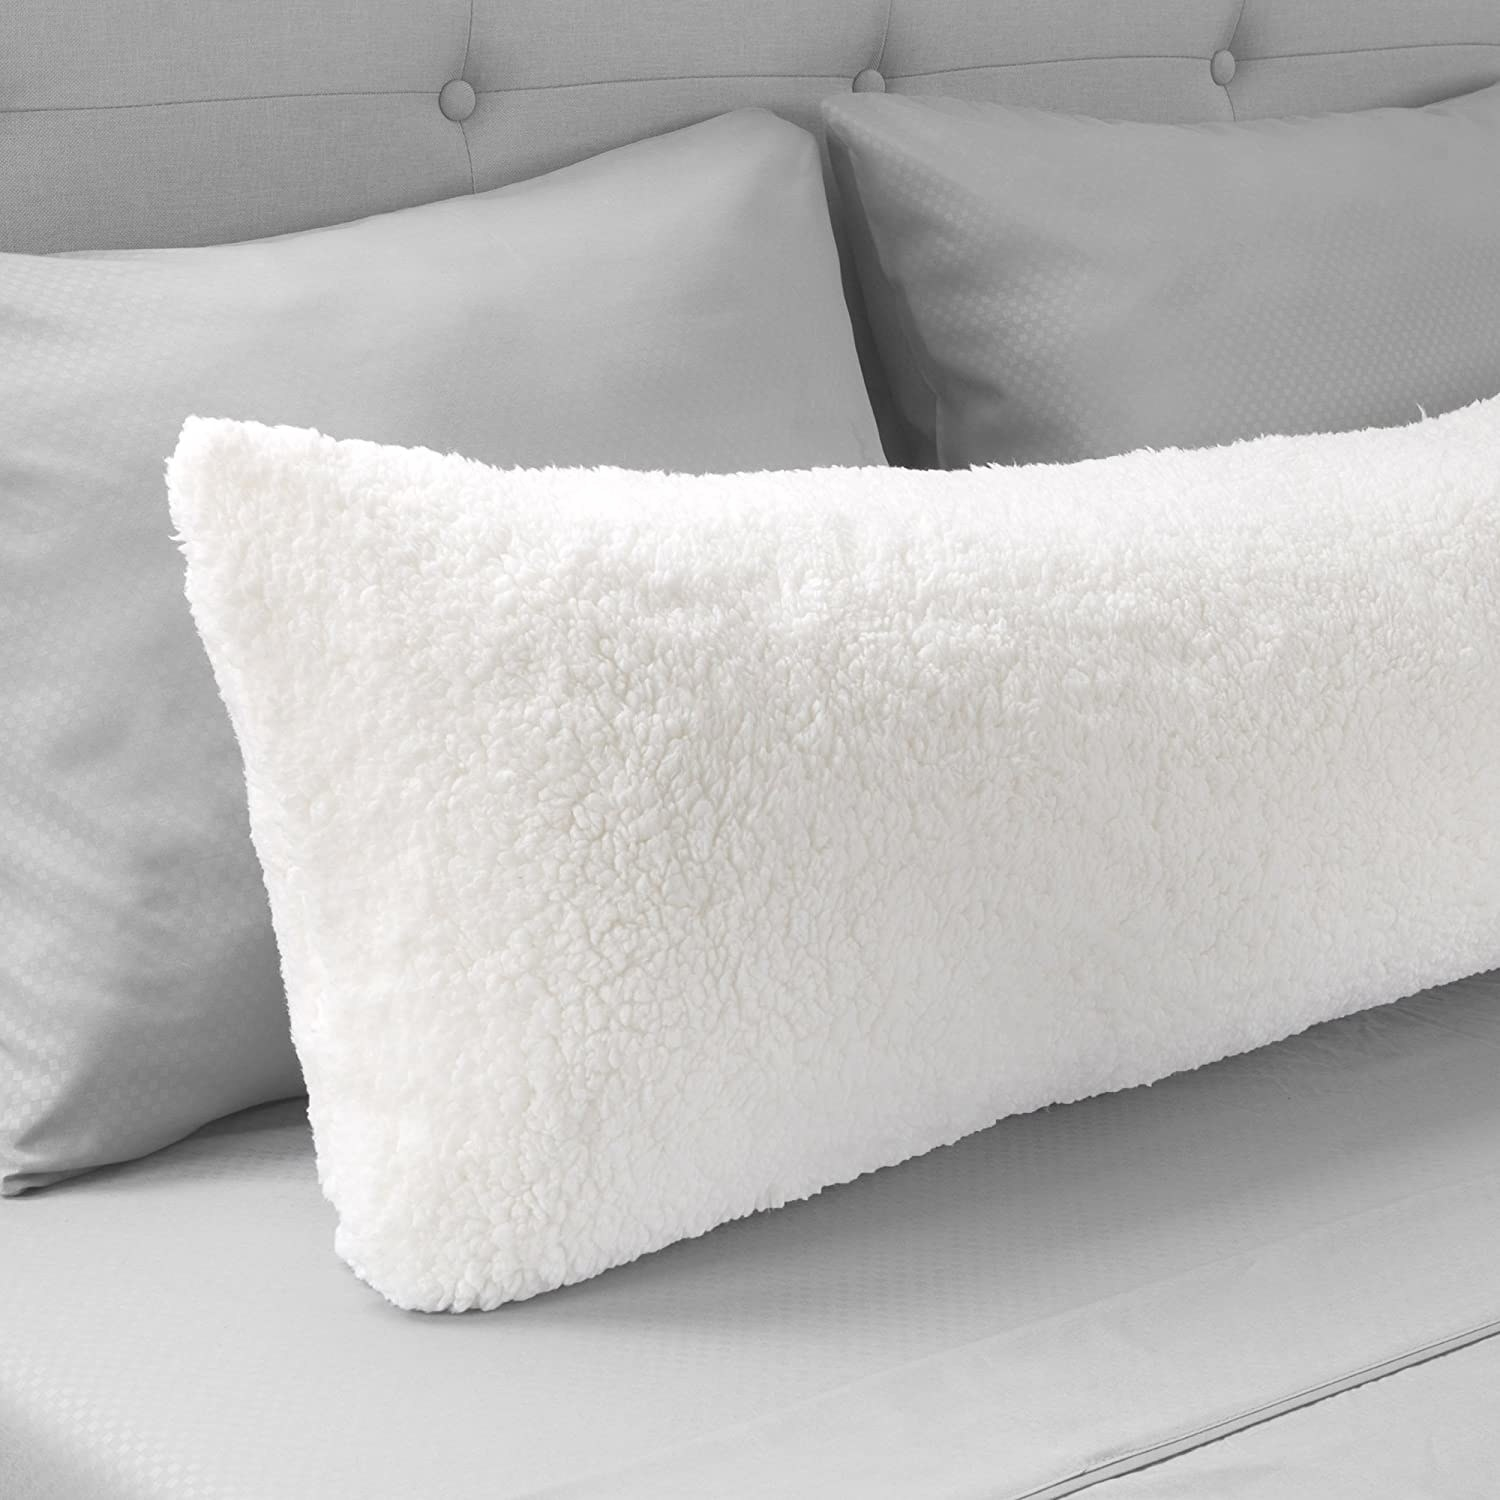 A fluffy body pillow on a bed